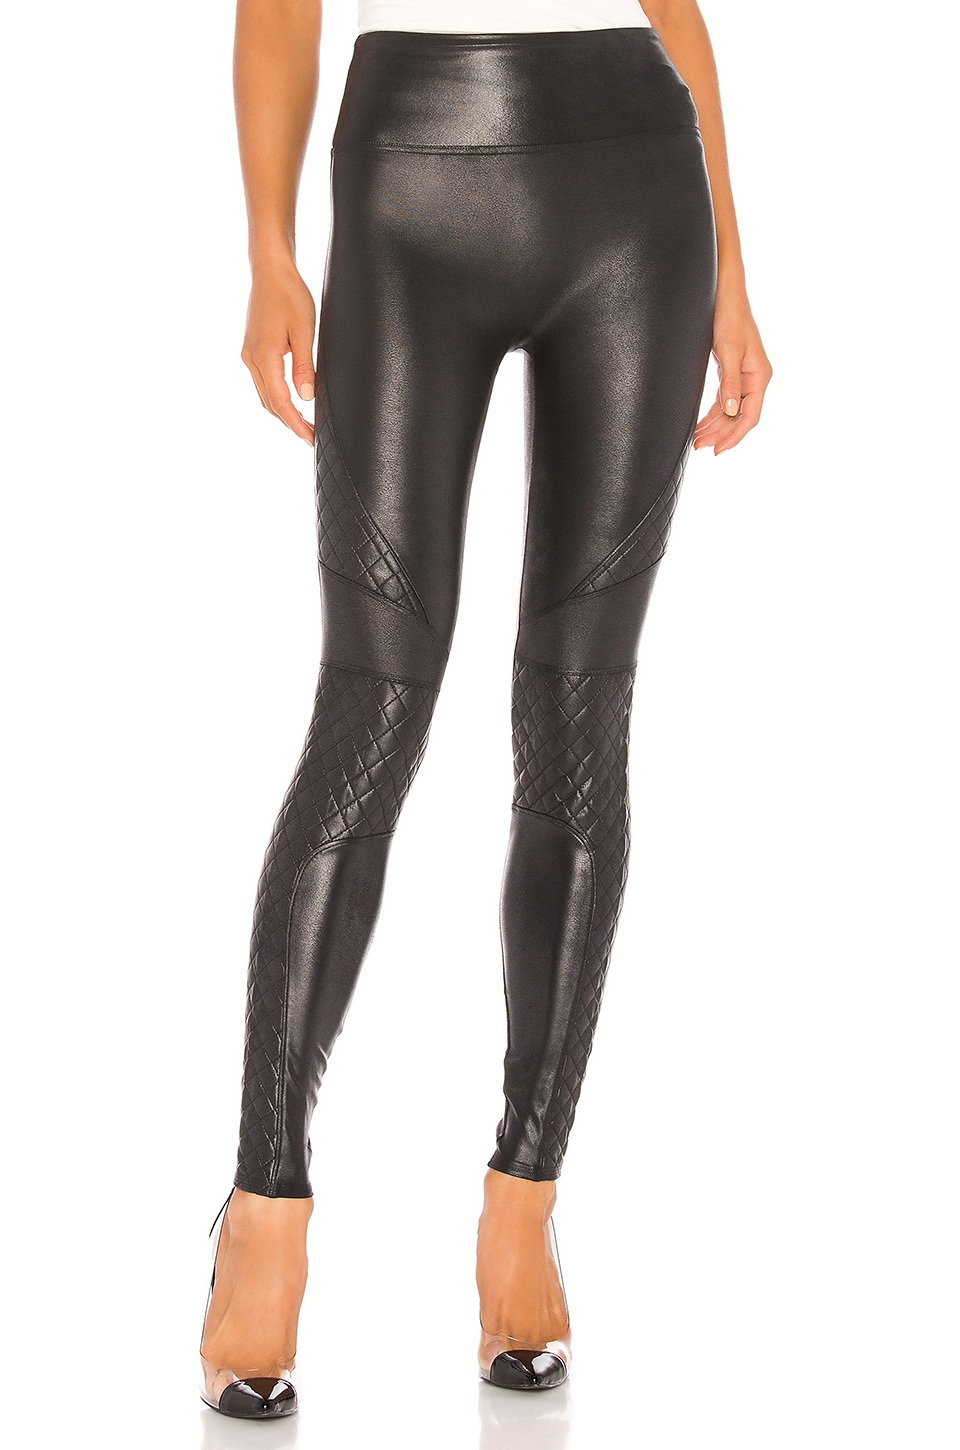 Quilted Faux Leather Legging                   SPANX                                                                                                                             CA$ 143.85 10